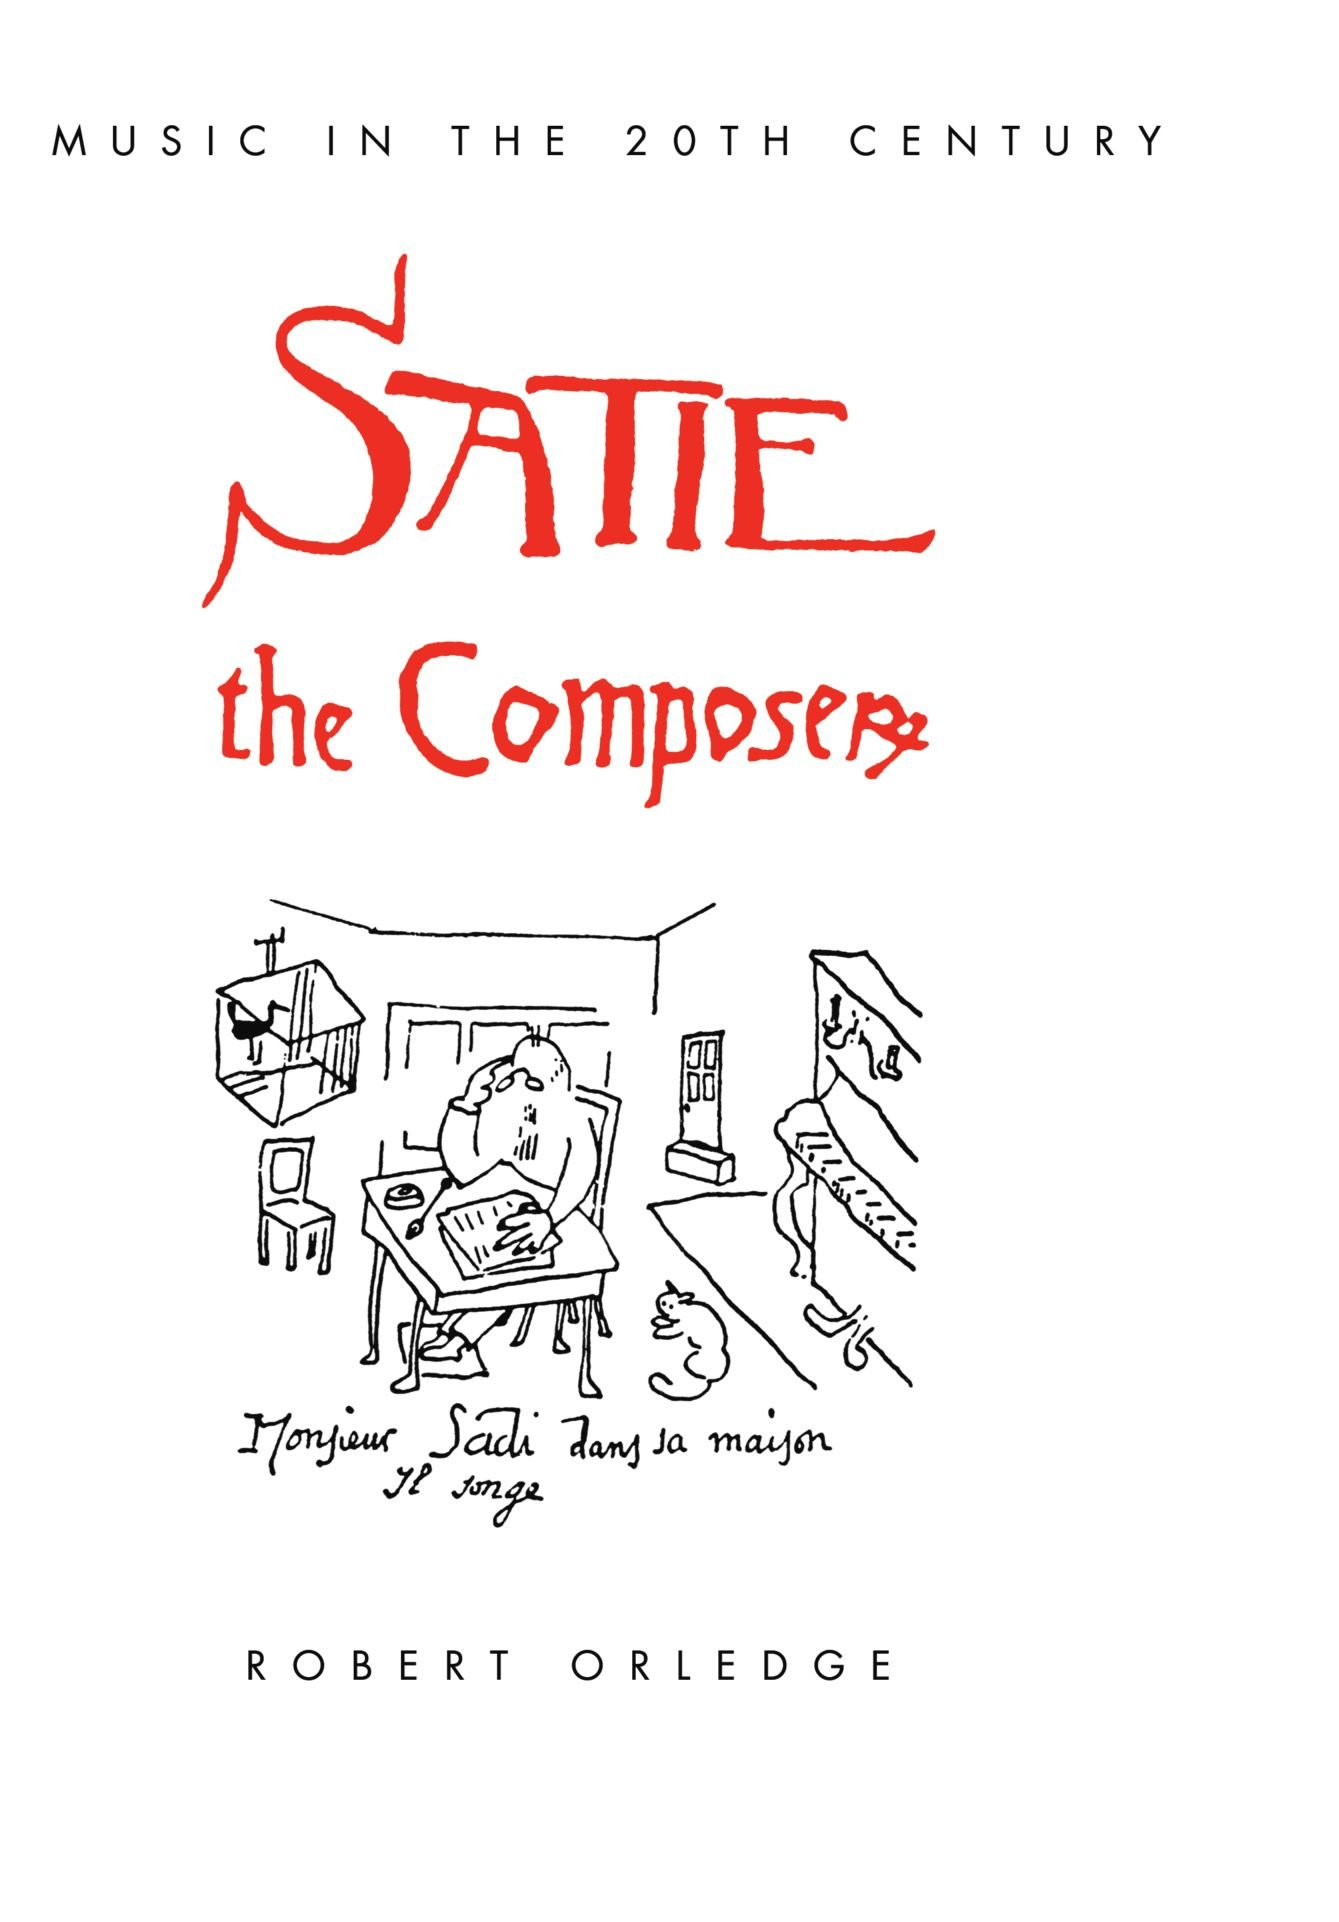 Satie the Composer (Music in the Twentieth Century) PDF